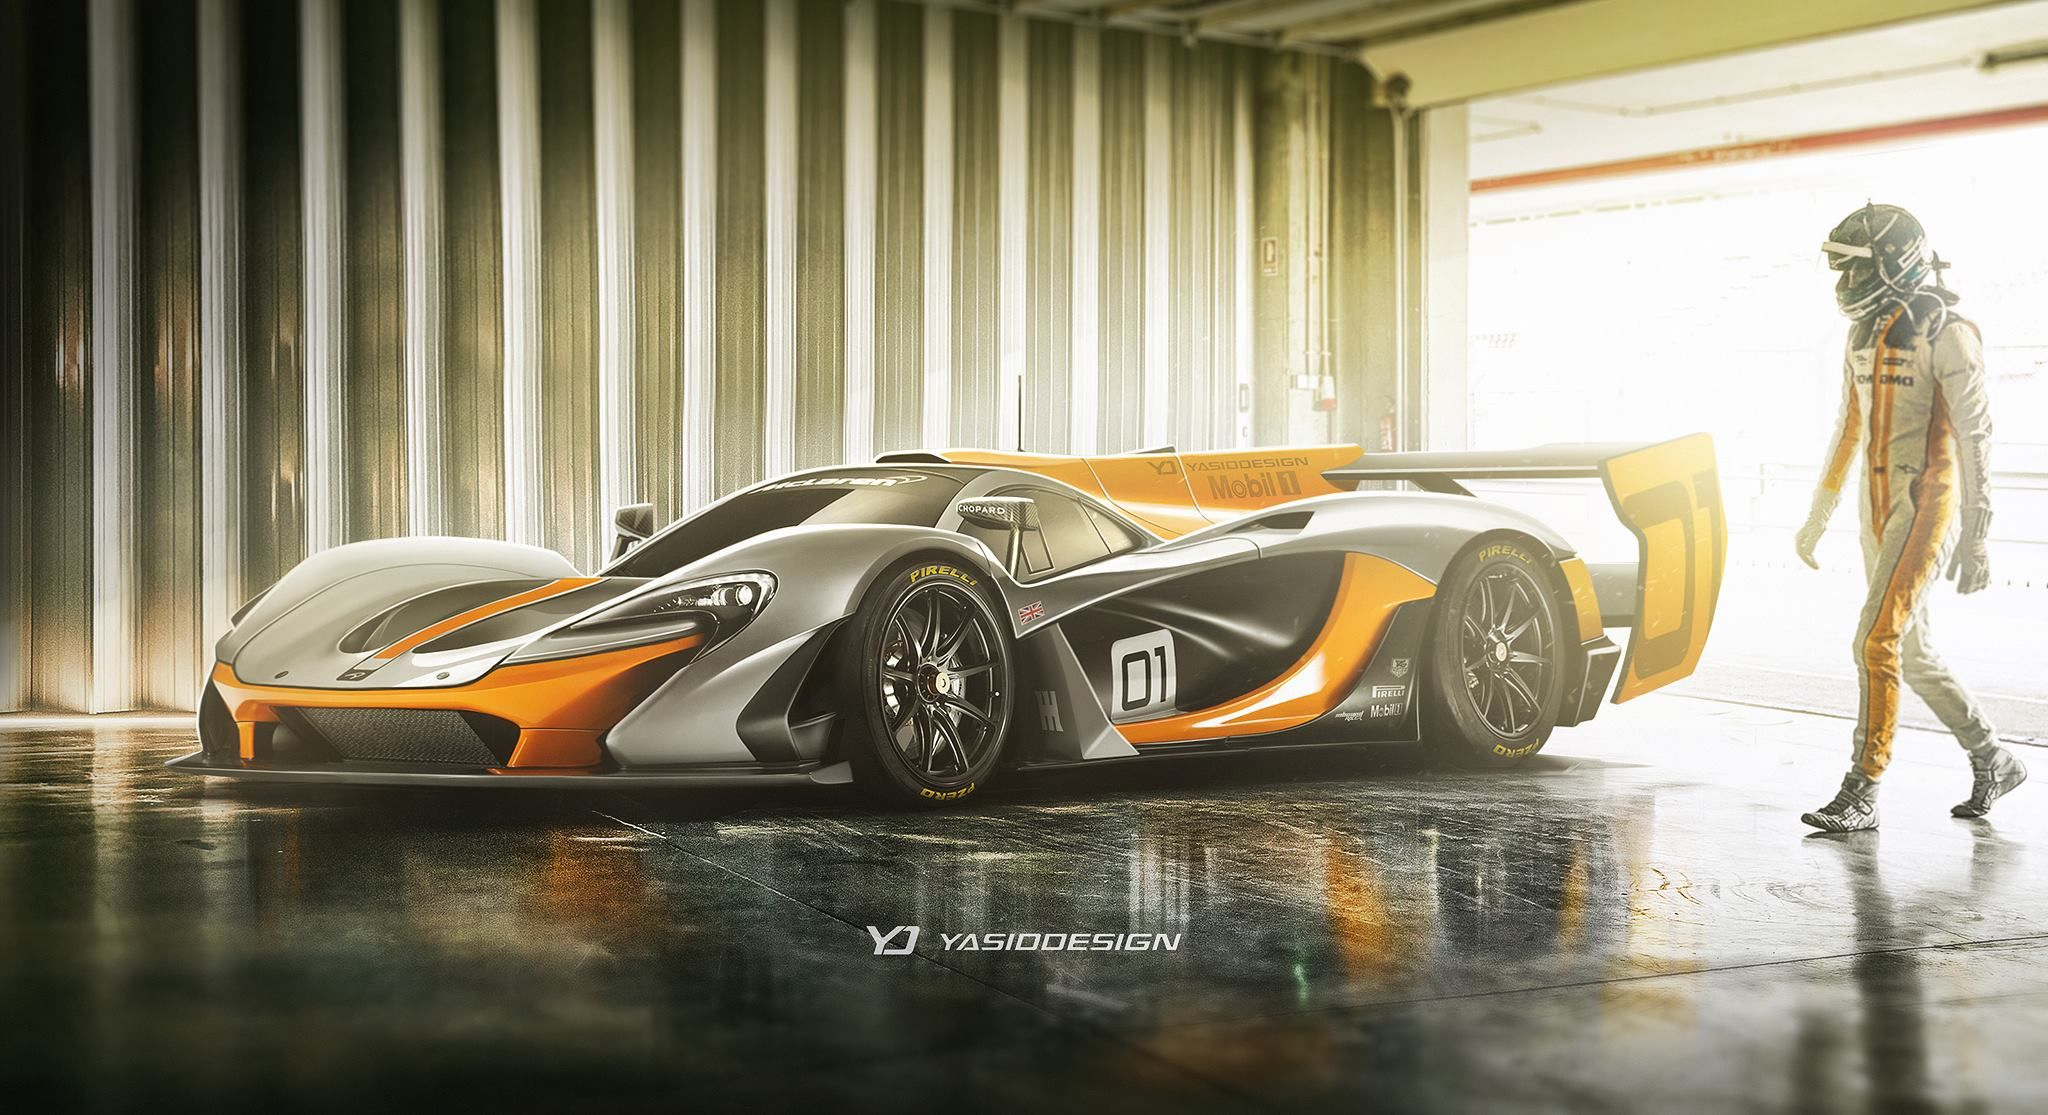 Mclaren p1 gtr extreme track weapon unveiled pictures - Here S Another Street Legal Mclaren P1 Gtr For Sale Only 4 36 Million Mclaren P1 And Cars